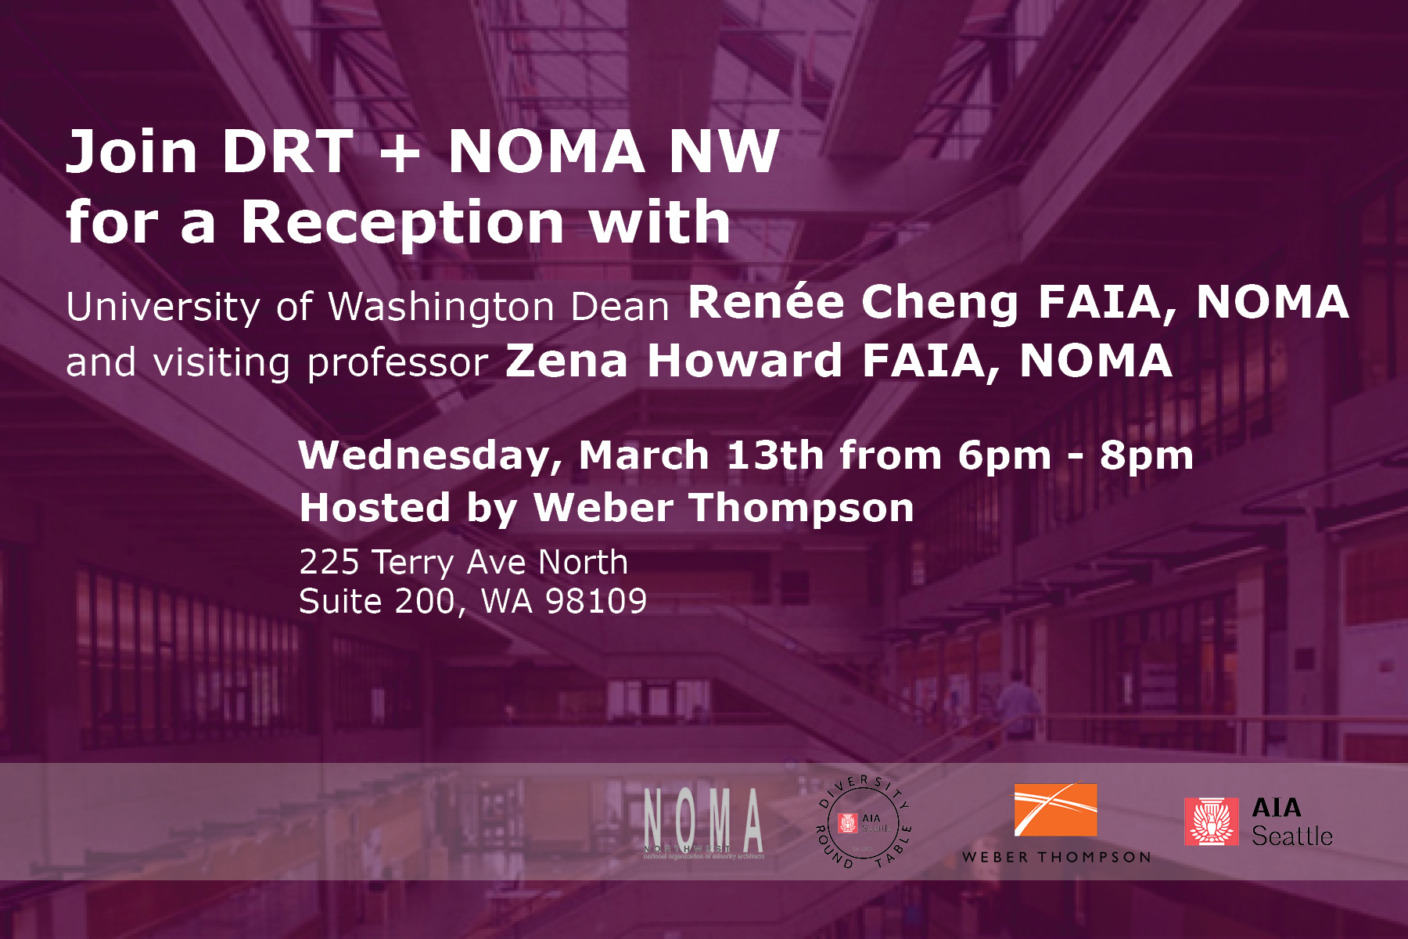 Join DRT + NOMA NW for a reception with University of Washington Dean Renée Cheng AIA, NOMA and visiting professor Zena Howard FAIA, NOMA